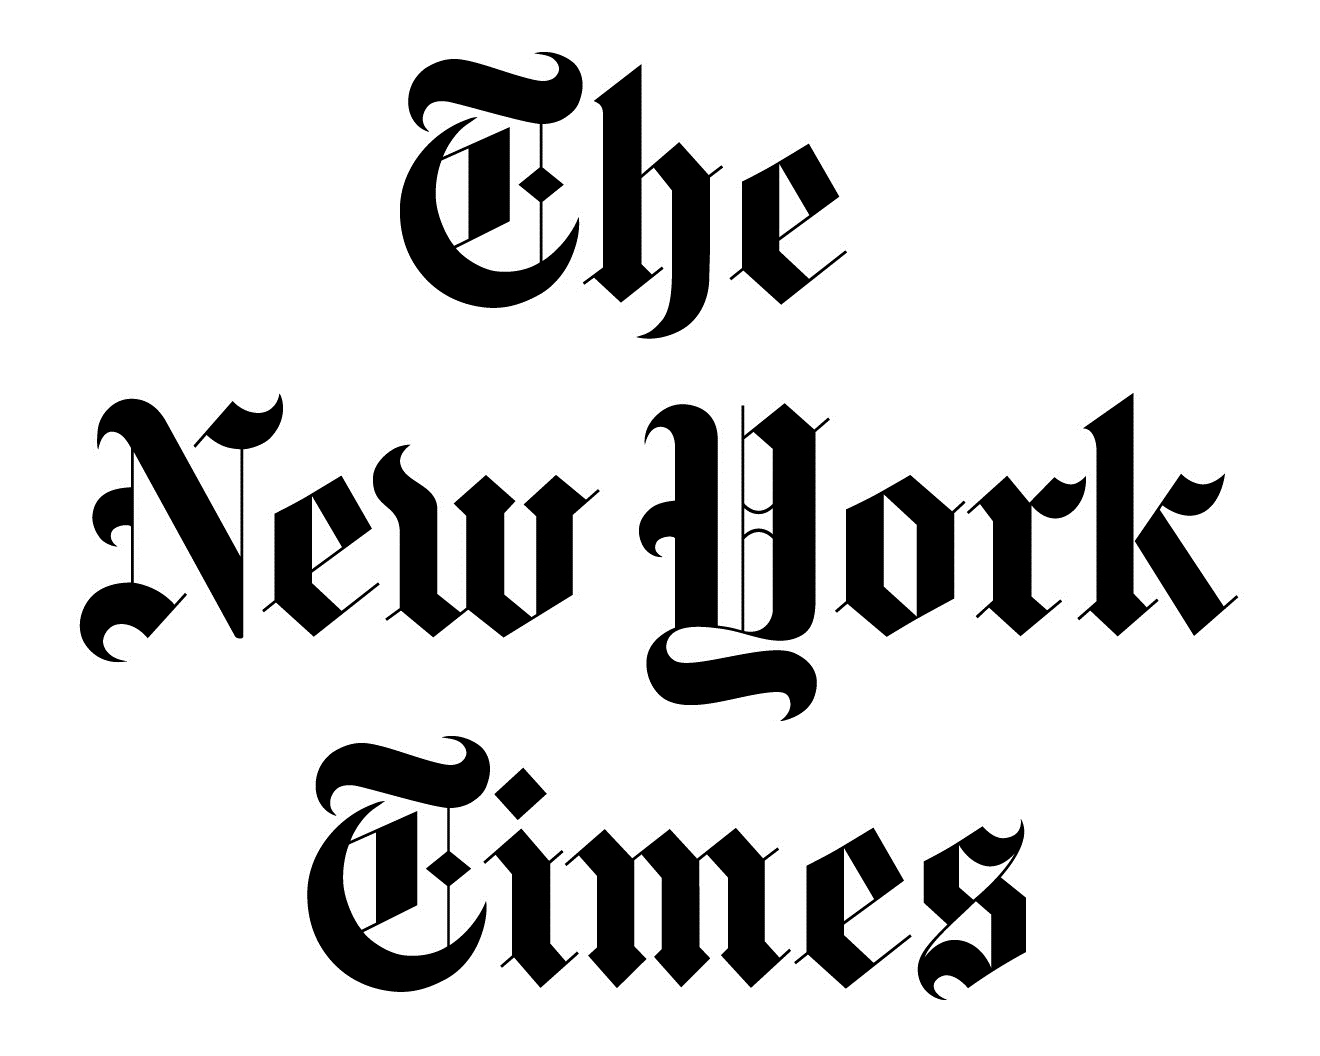 https://upload.wikimedia.org/wikipedia/commons/4/40/New_York_Times_logo_variation.jpg